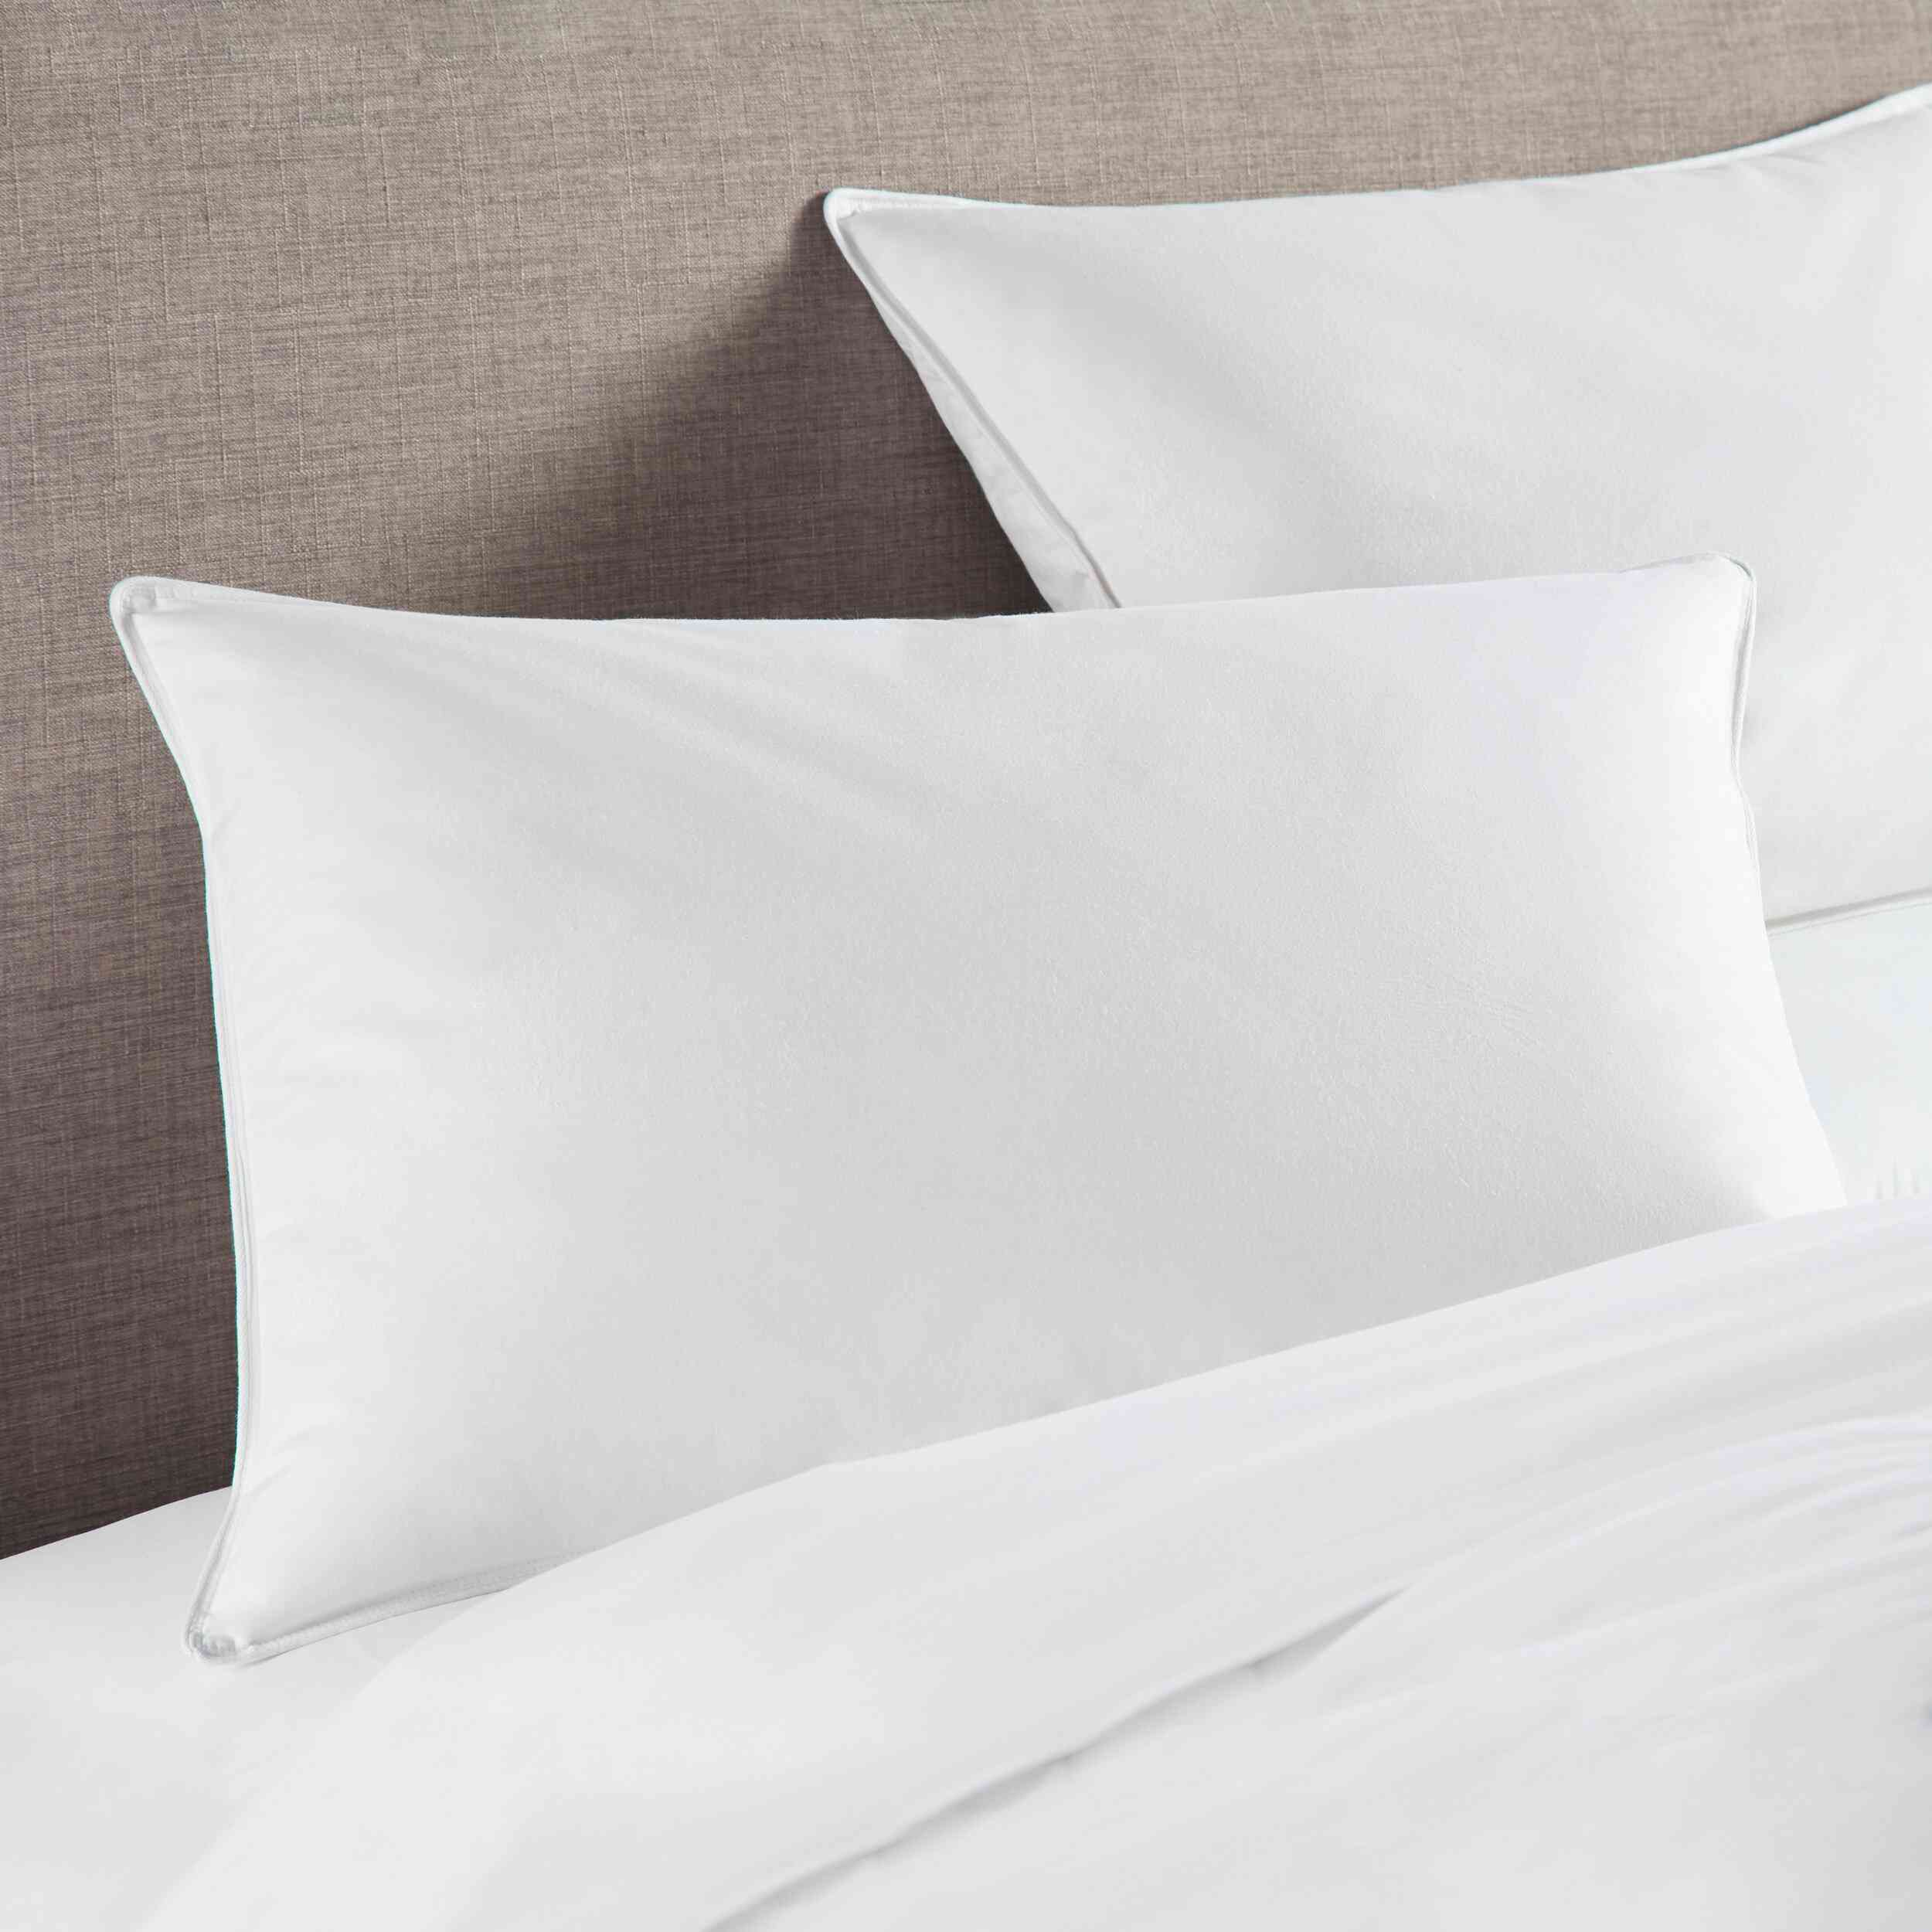 Howth Stomach Sleeper Extra Soft Feather Jumbo Pillow